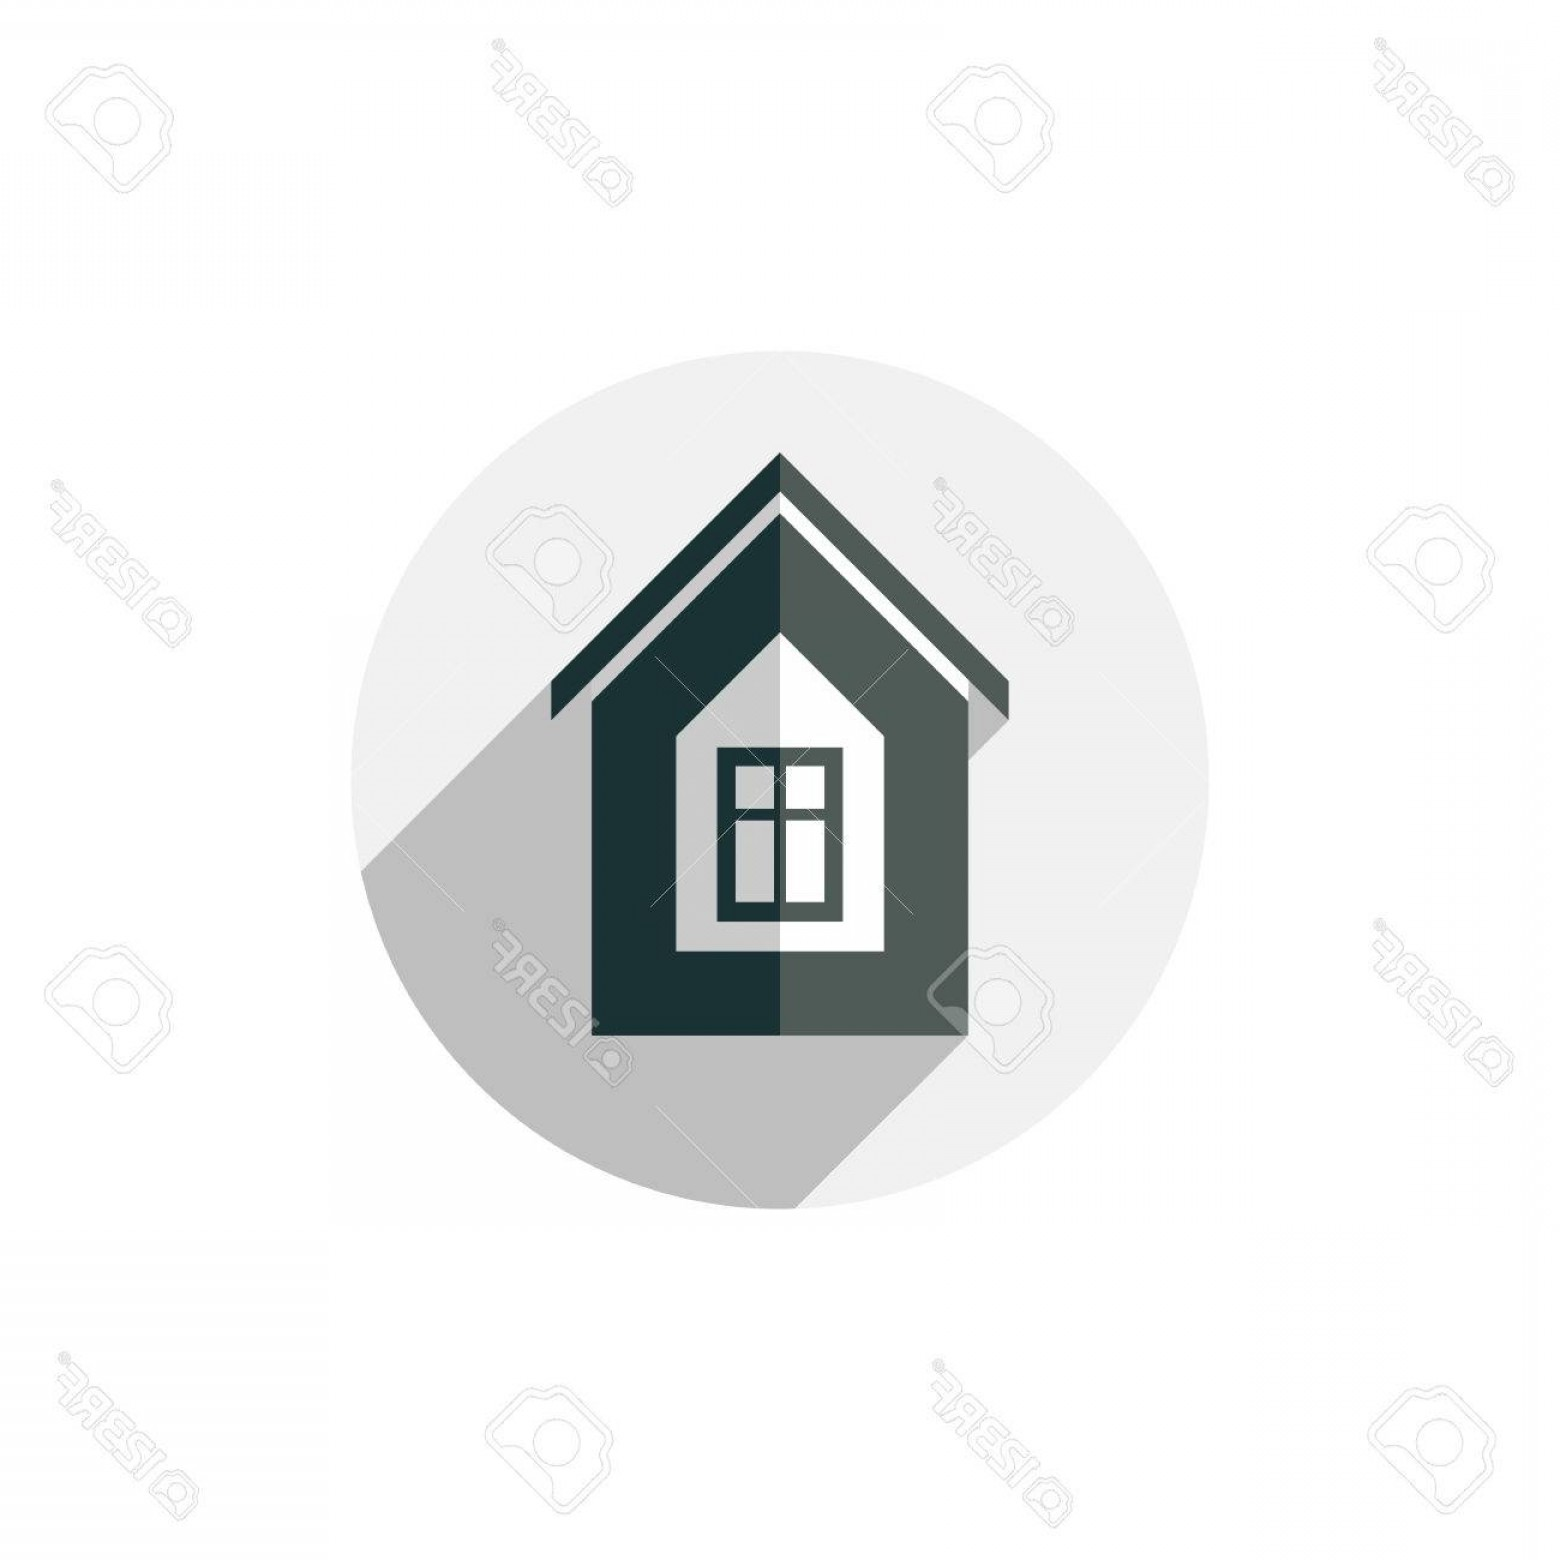 Vector House Sign: Photostock Vector Property Symbol Vector House Constructed With Bricks Real Estate Agency Theme Round Sign With Home I